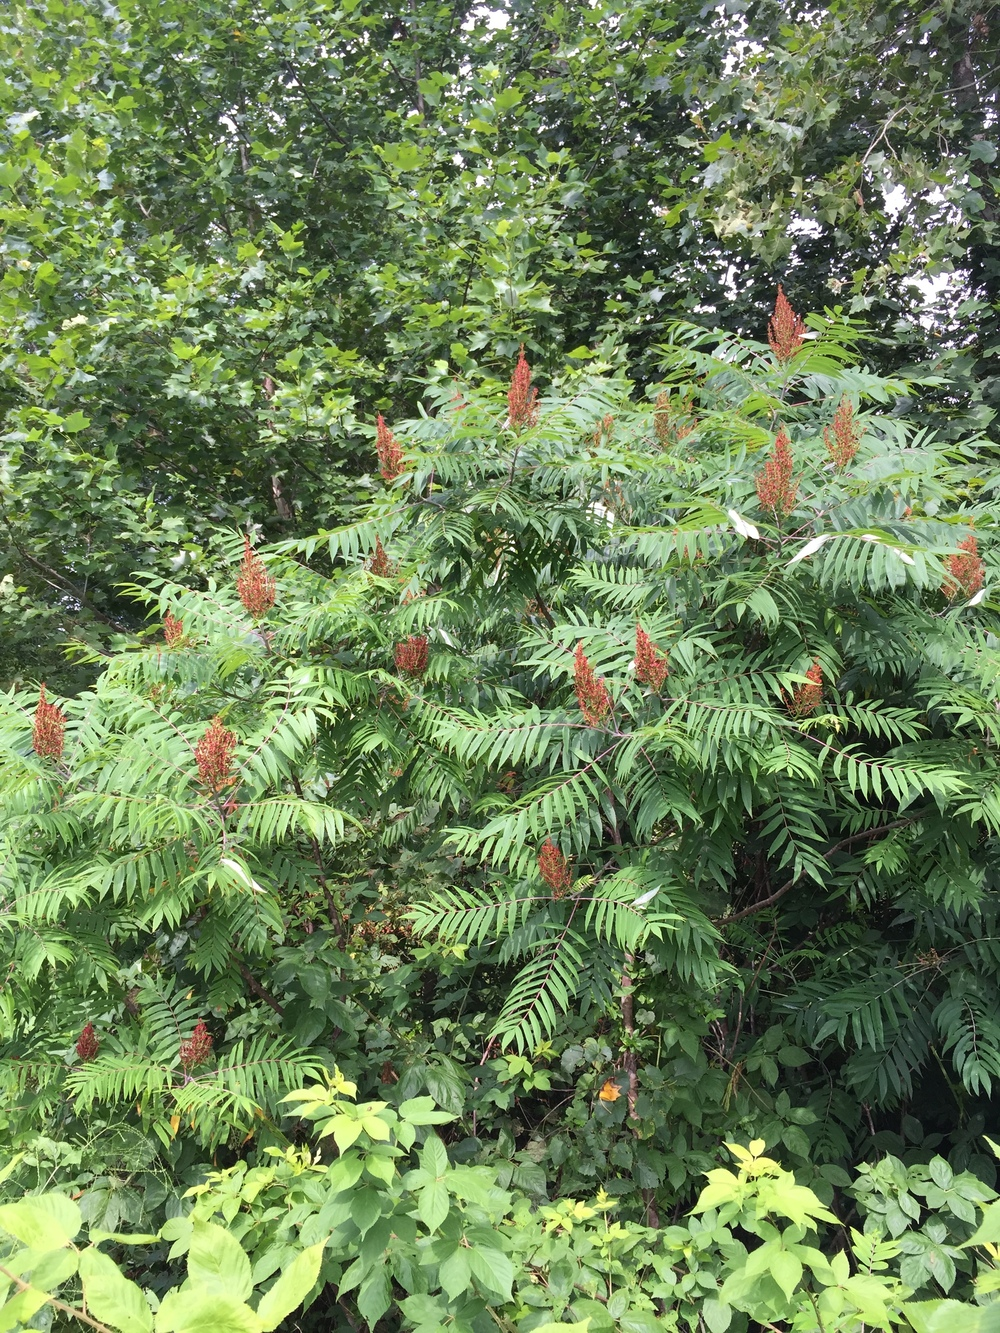 Sumac is flowering! The fruit is forageable and has a lovely sour taste.